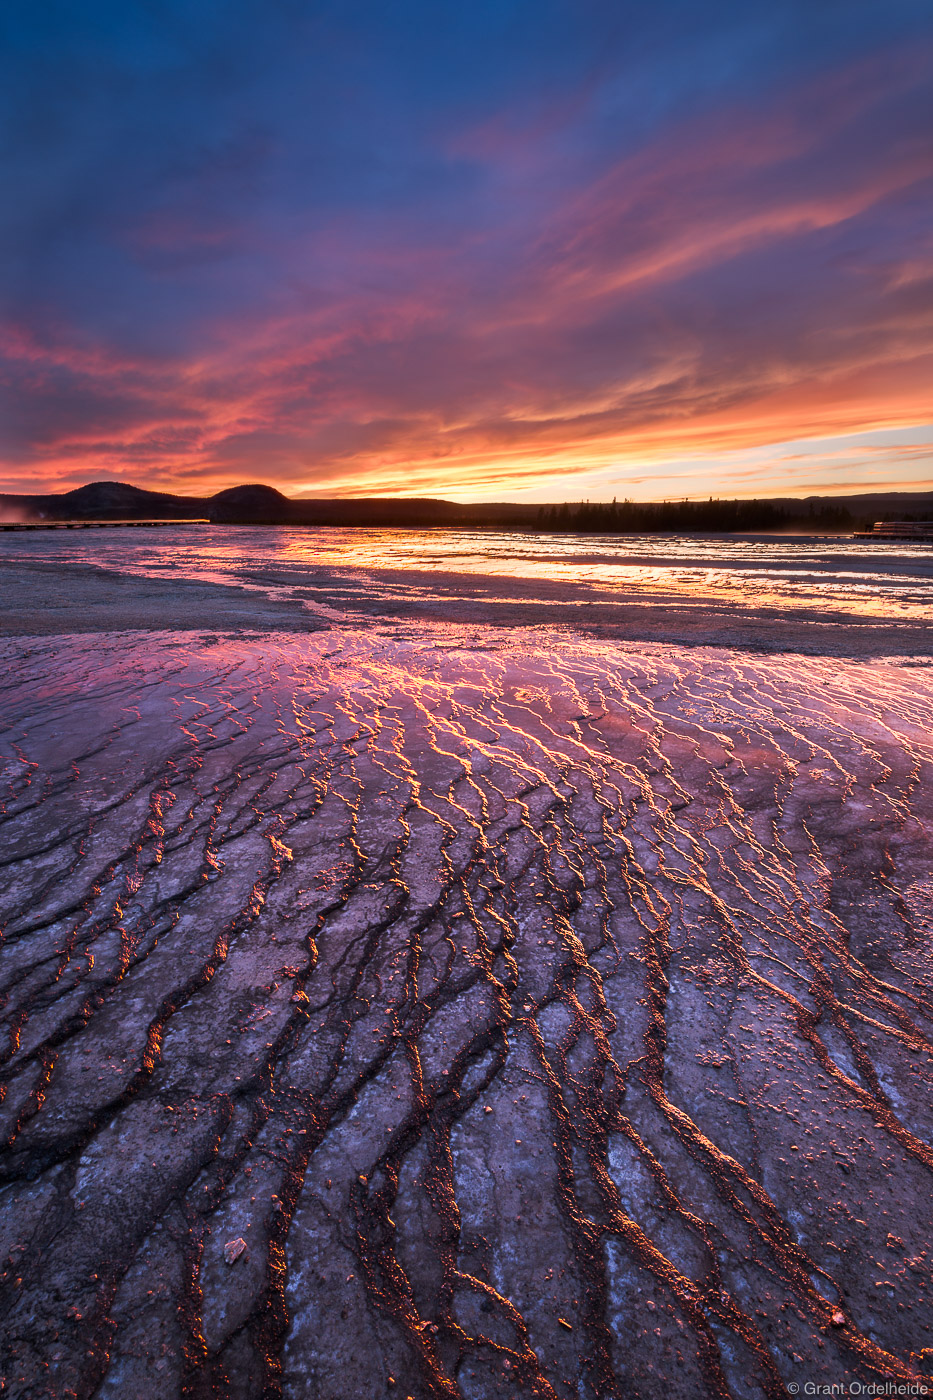 Sunset over the Grand Prismatic spring in Wyoming's Yellowstone National Park.